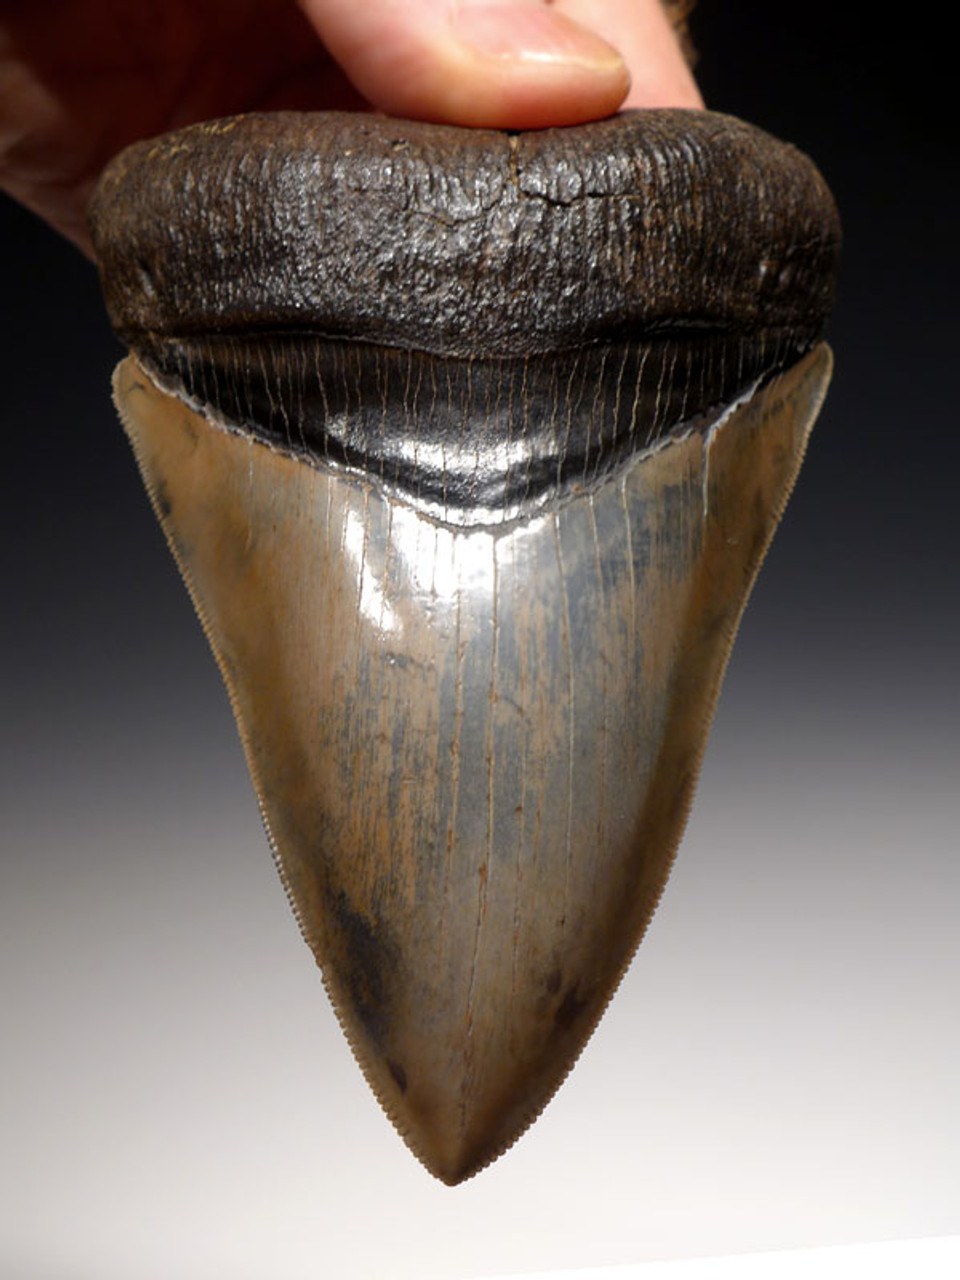 SH6-306 - COLLECTOR GRADE 4.8 INCH STABBING MEGALODON SHARK TOOTH FROM THE LOWER JAW